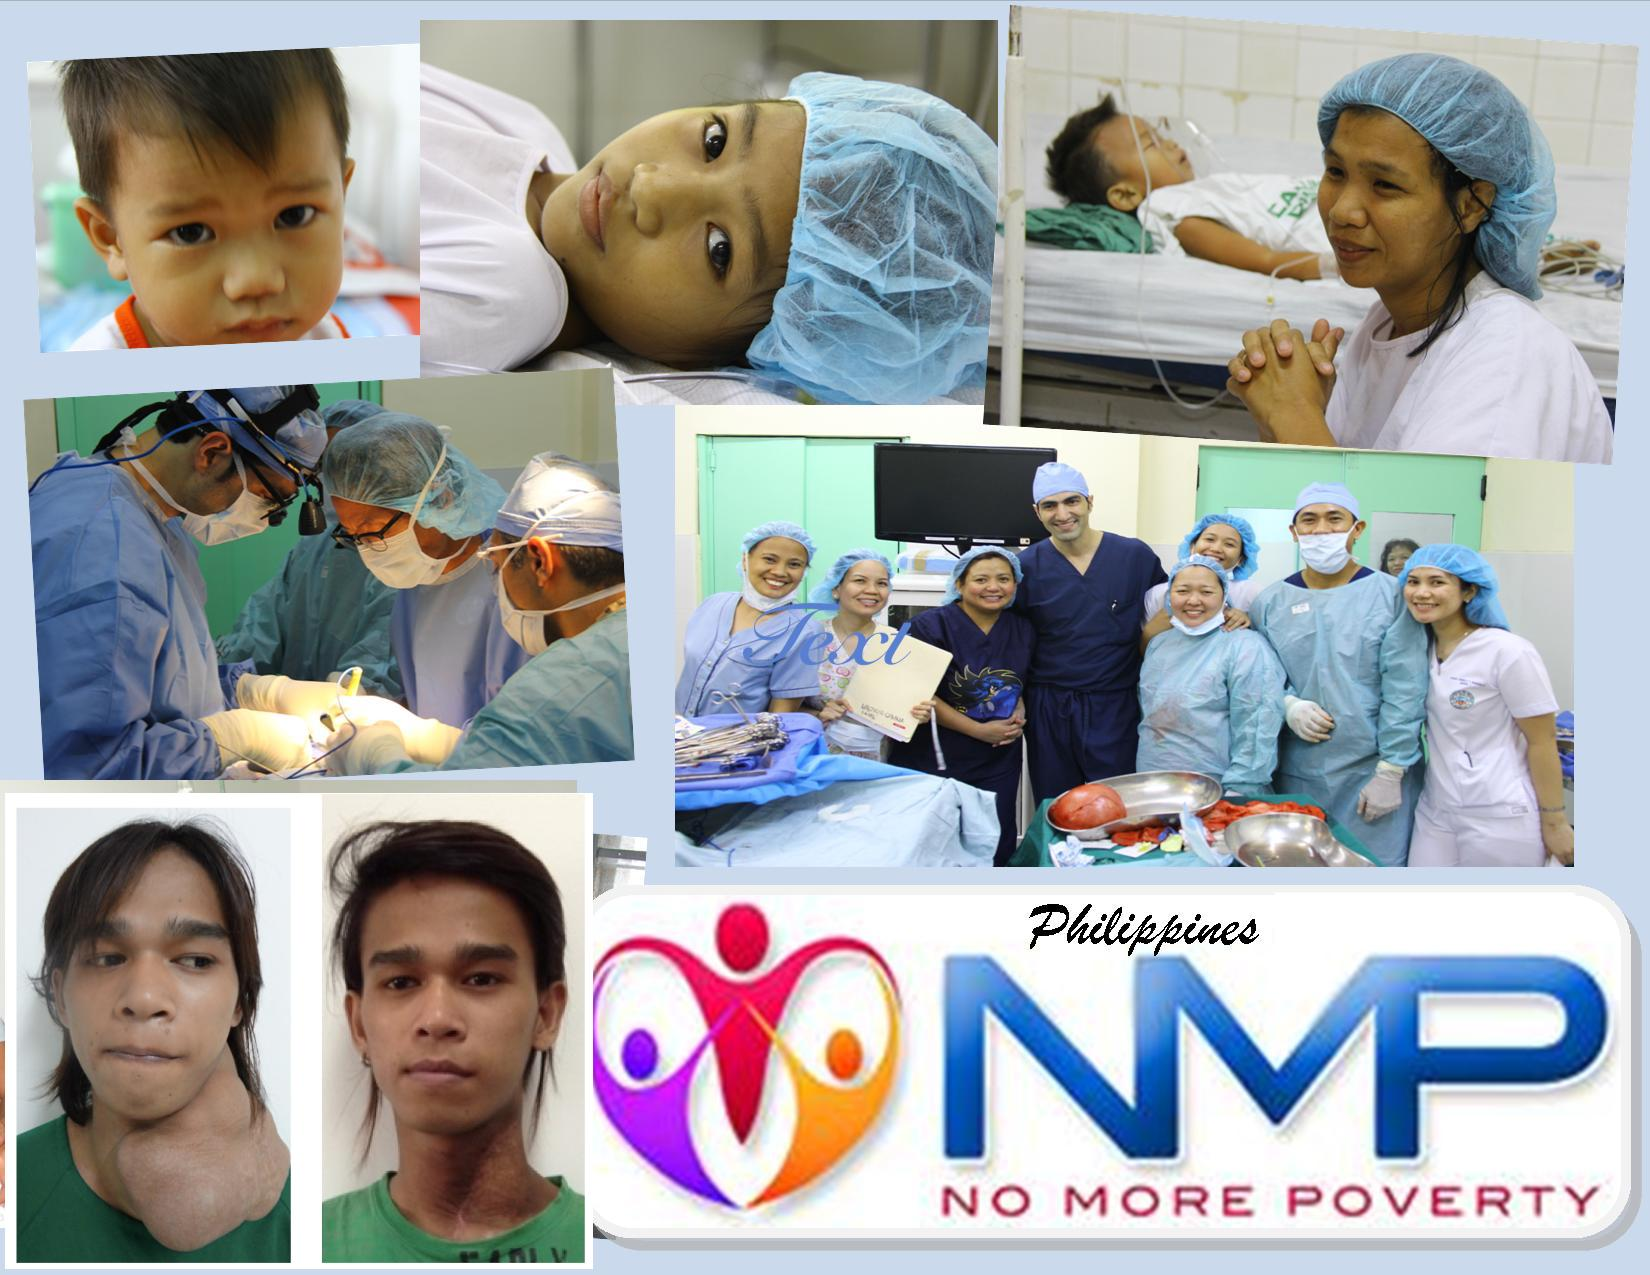 Dr. Michael Omidi partners with Actions of Hope to plan a surgical mission In Bulacan, Philippines